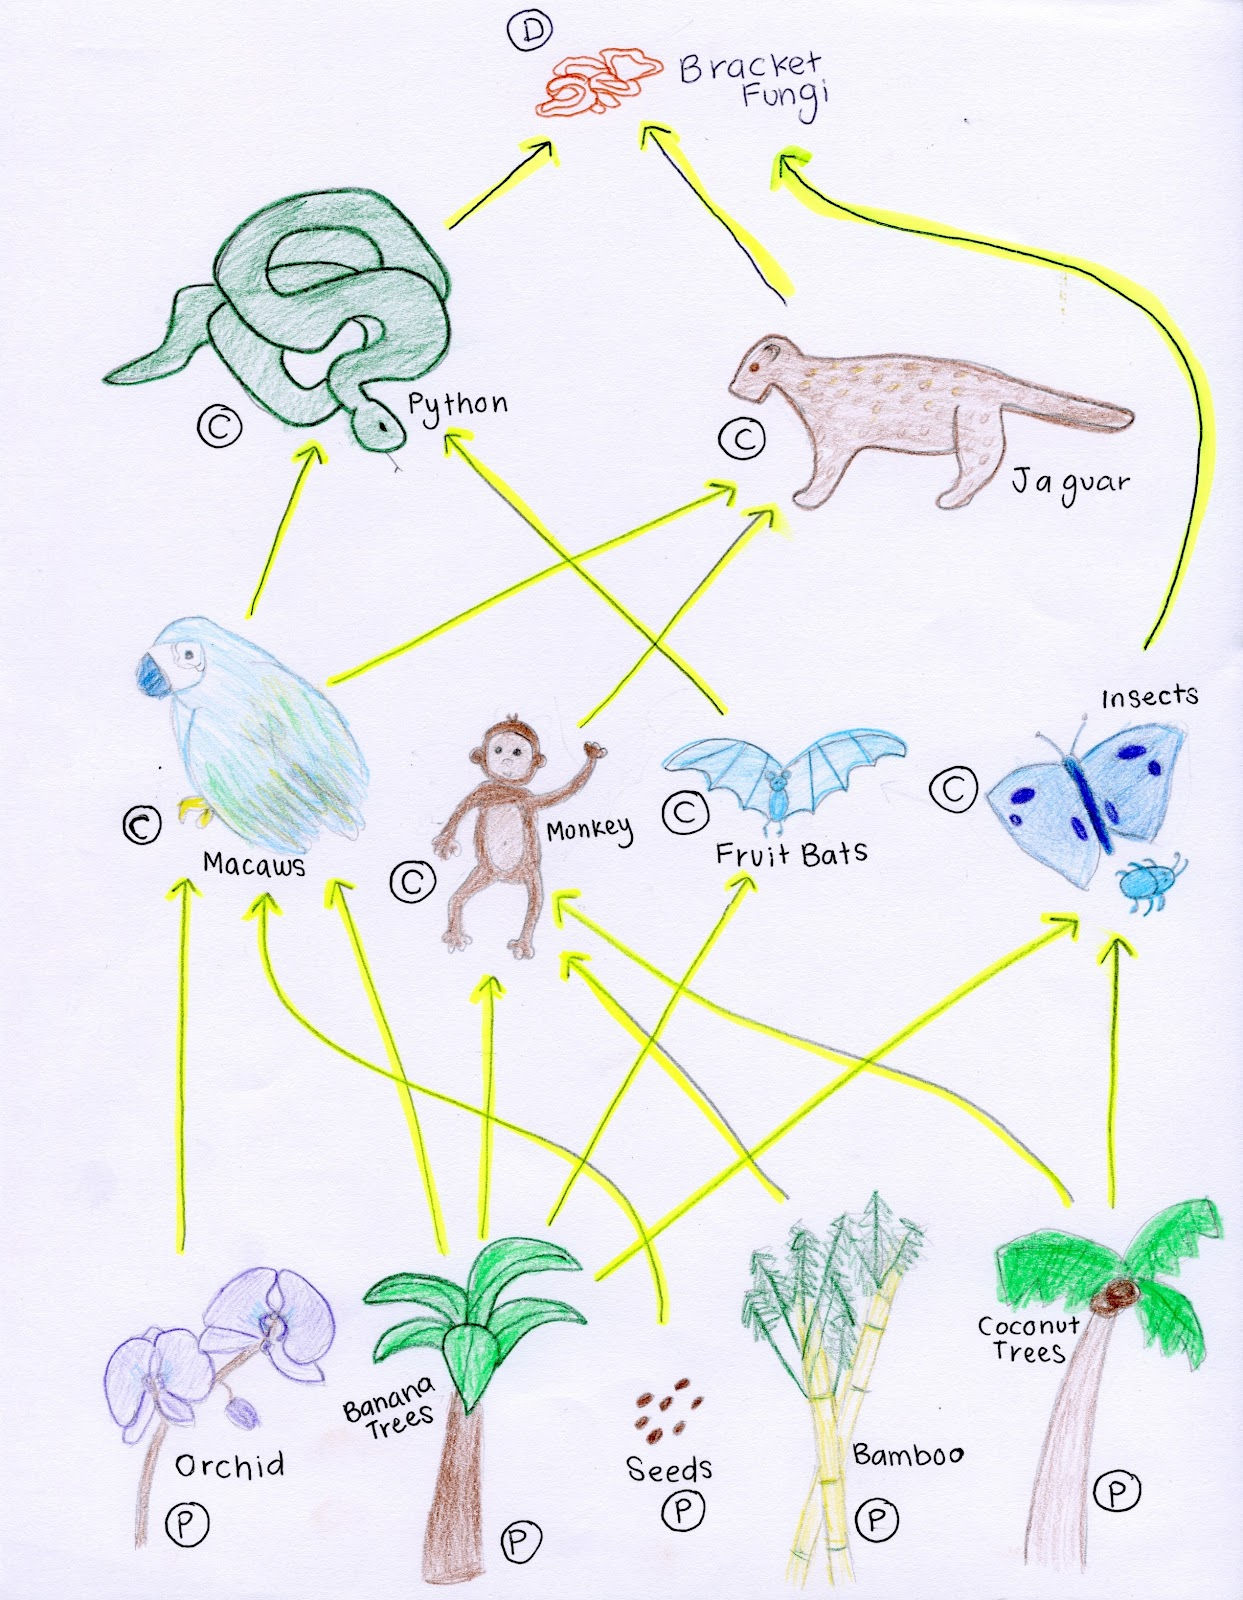 Tropical Rainforests Key Stone Species And Food Web In